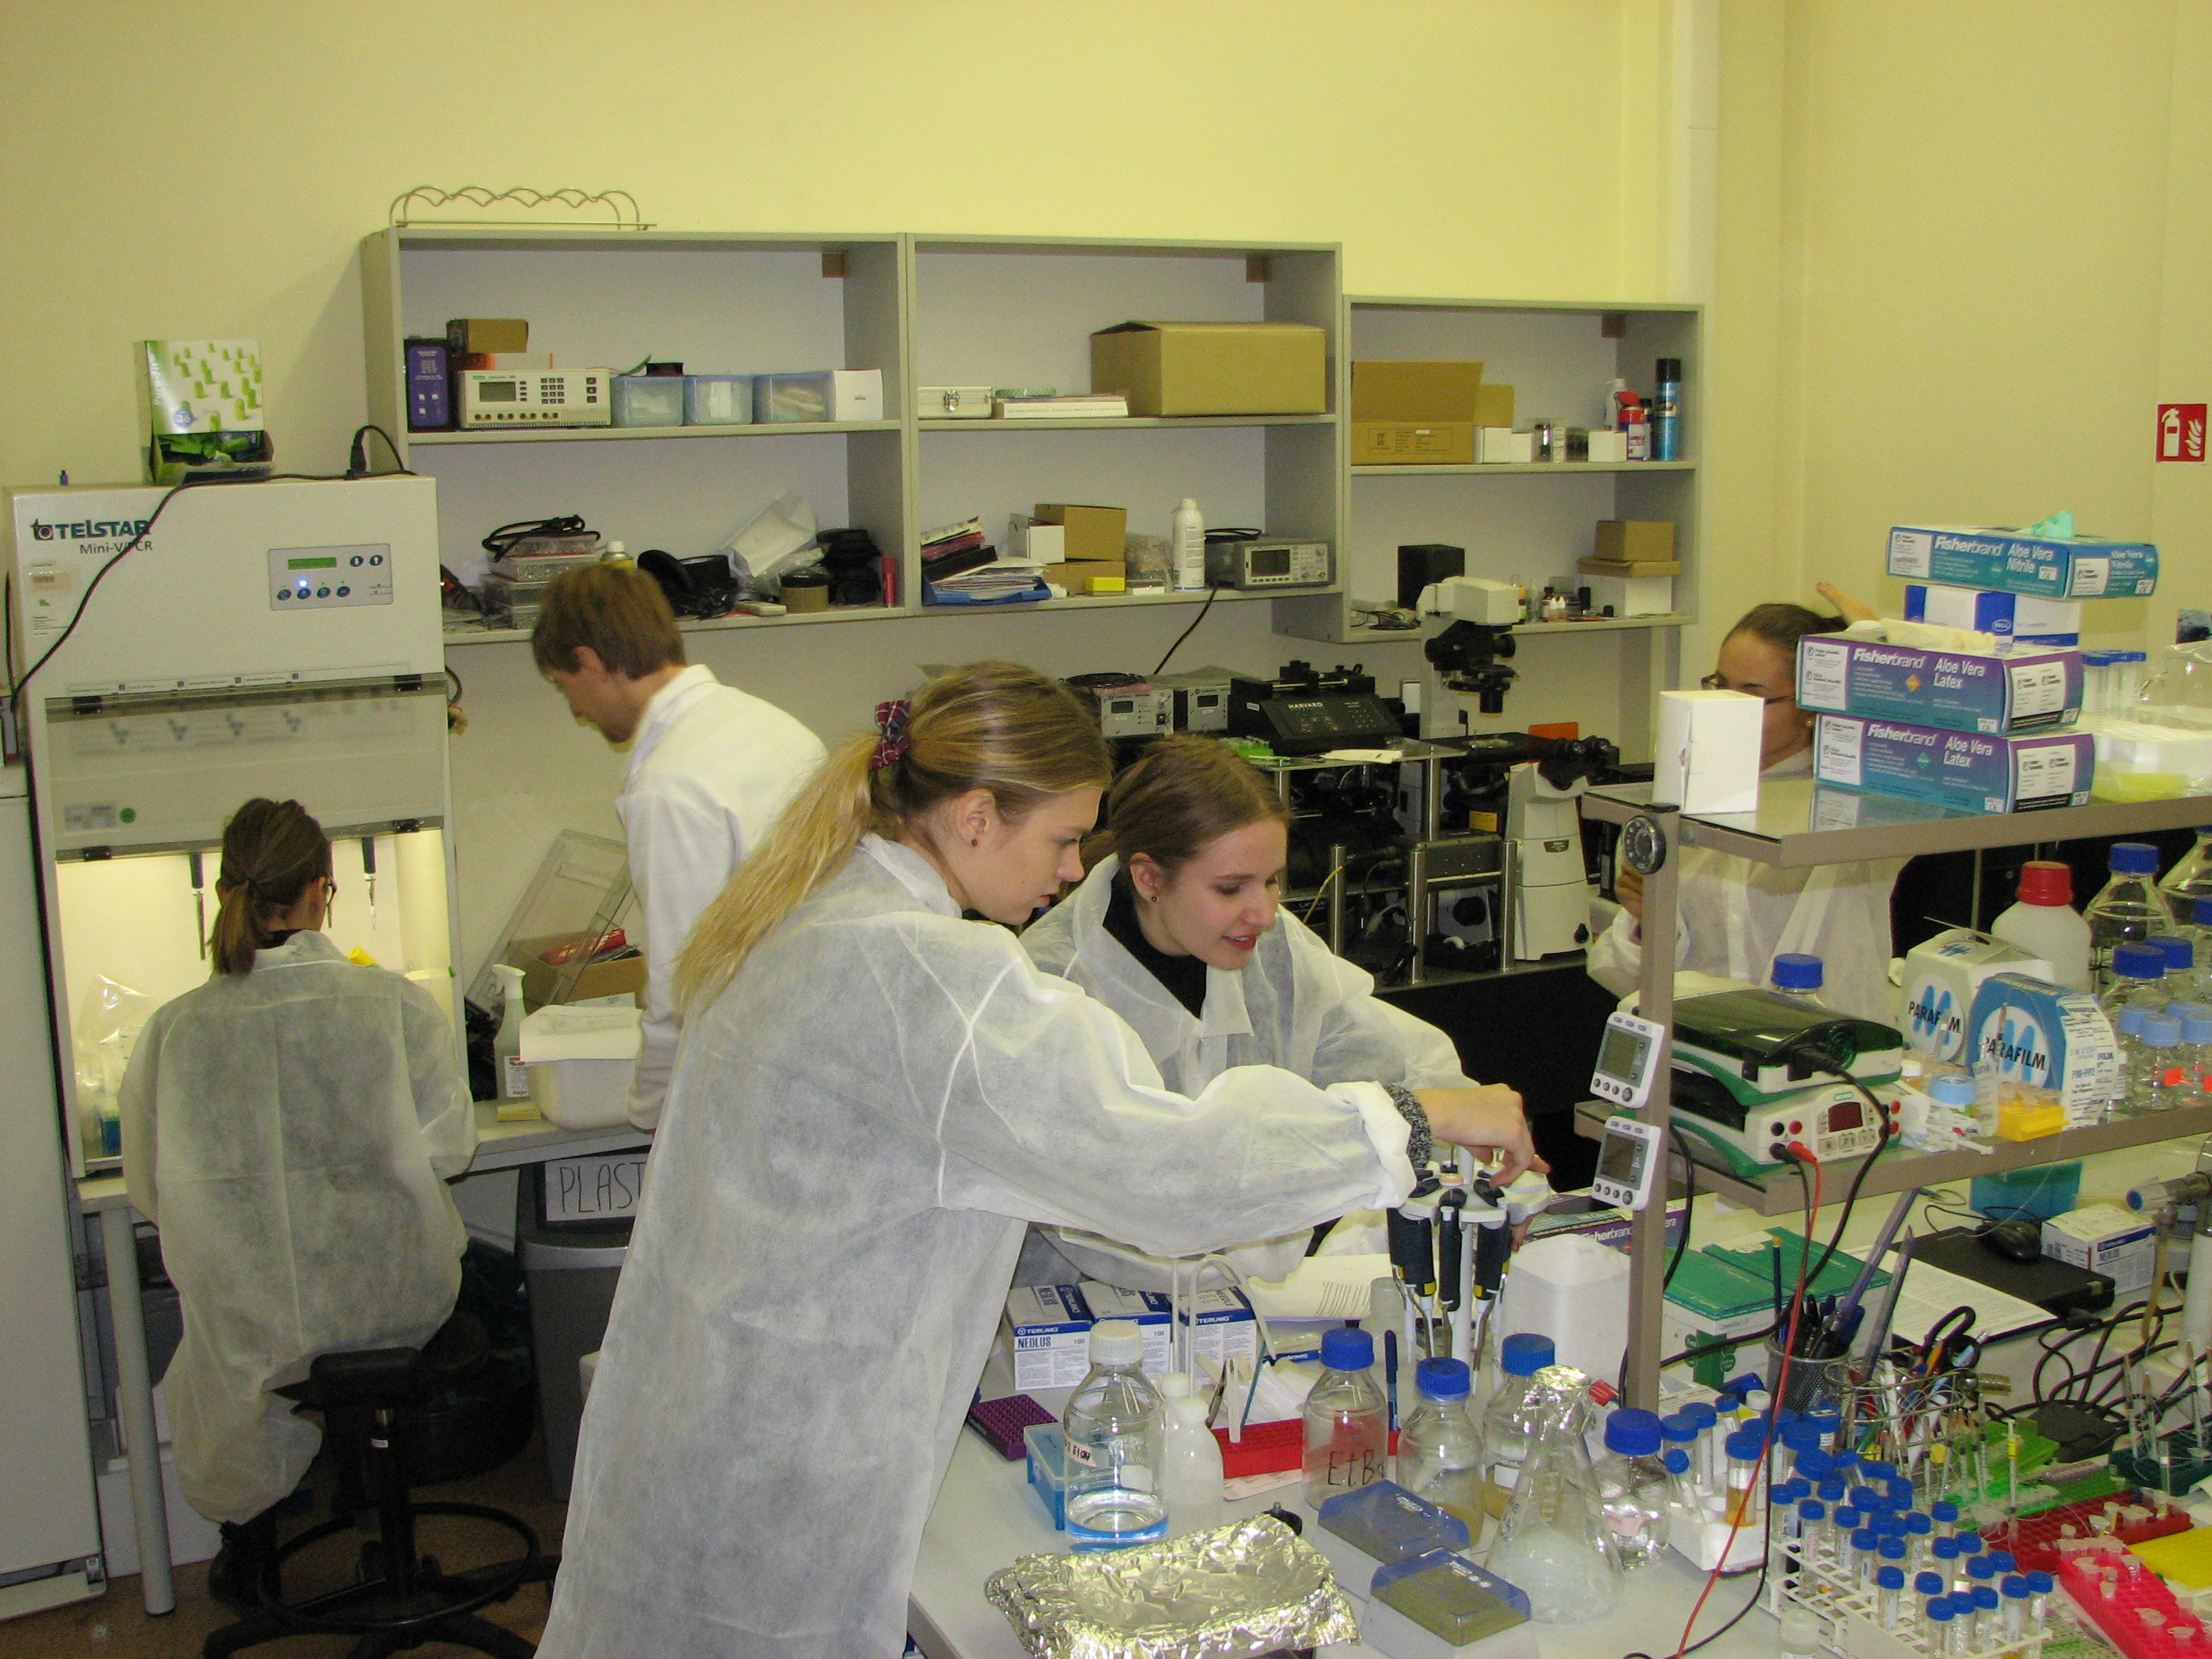 Lithuania_Laboratory experiments